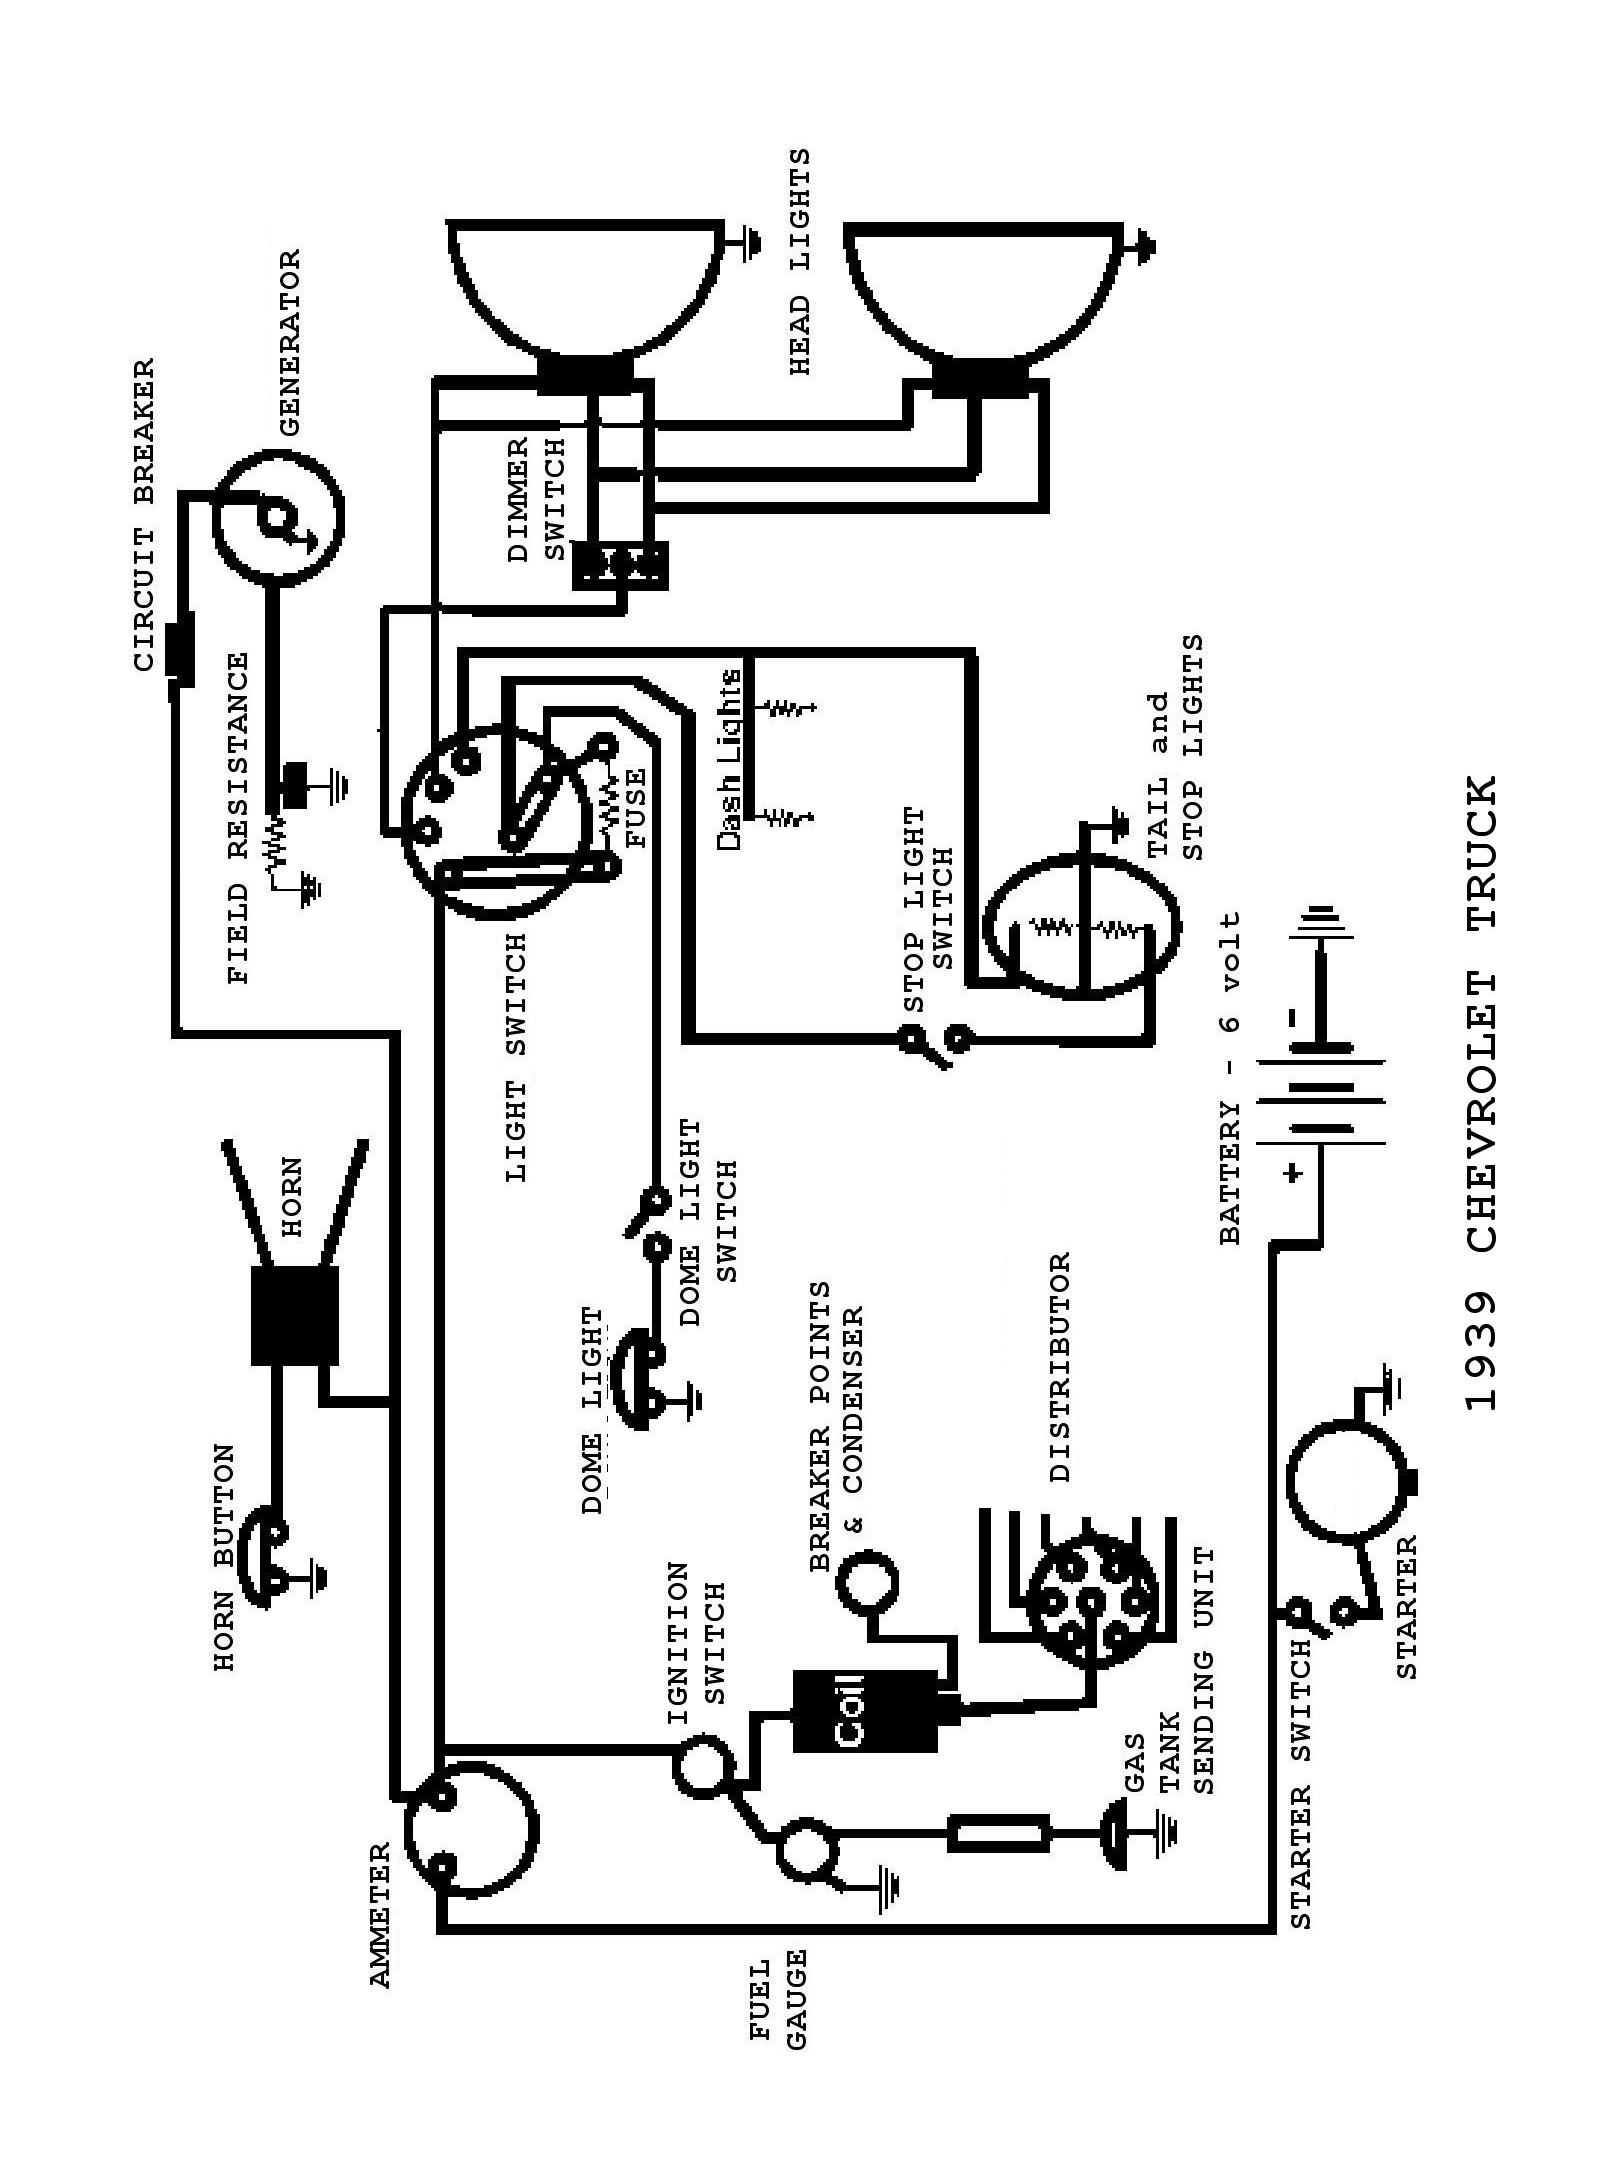 color code in electrical wiring with Wiring on 1967 Mustang Wiring And Vacuum Diagrams besides Where To Syphon Off Voltage From A 25 Pin Serial also 1989 Mazda Rx 7 Alternator And Charging System Wiring Circuit also Wiring Information Diagram additionally Central Locking Wiring Diagram For Peugeot 206 Also.